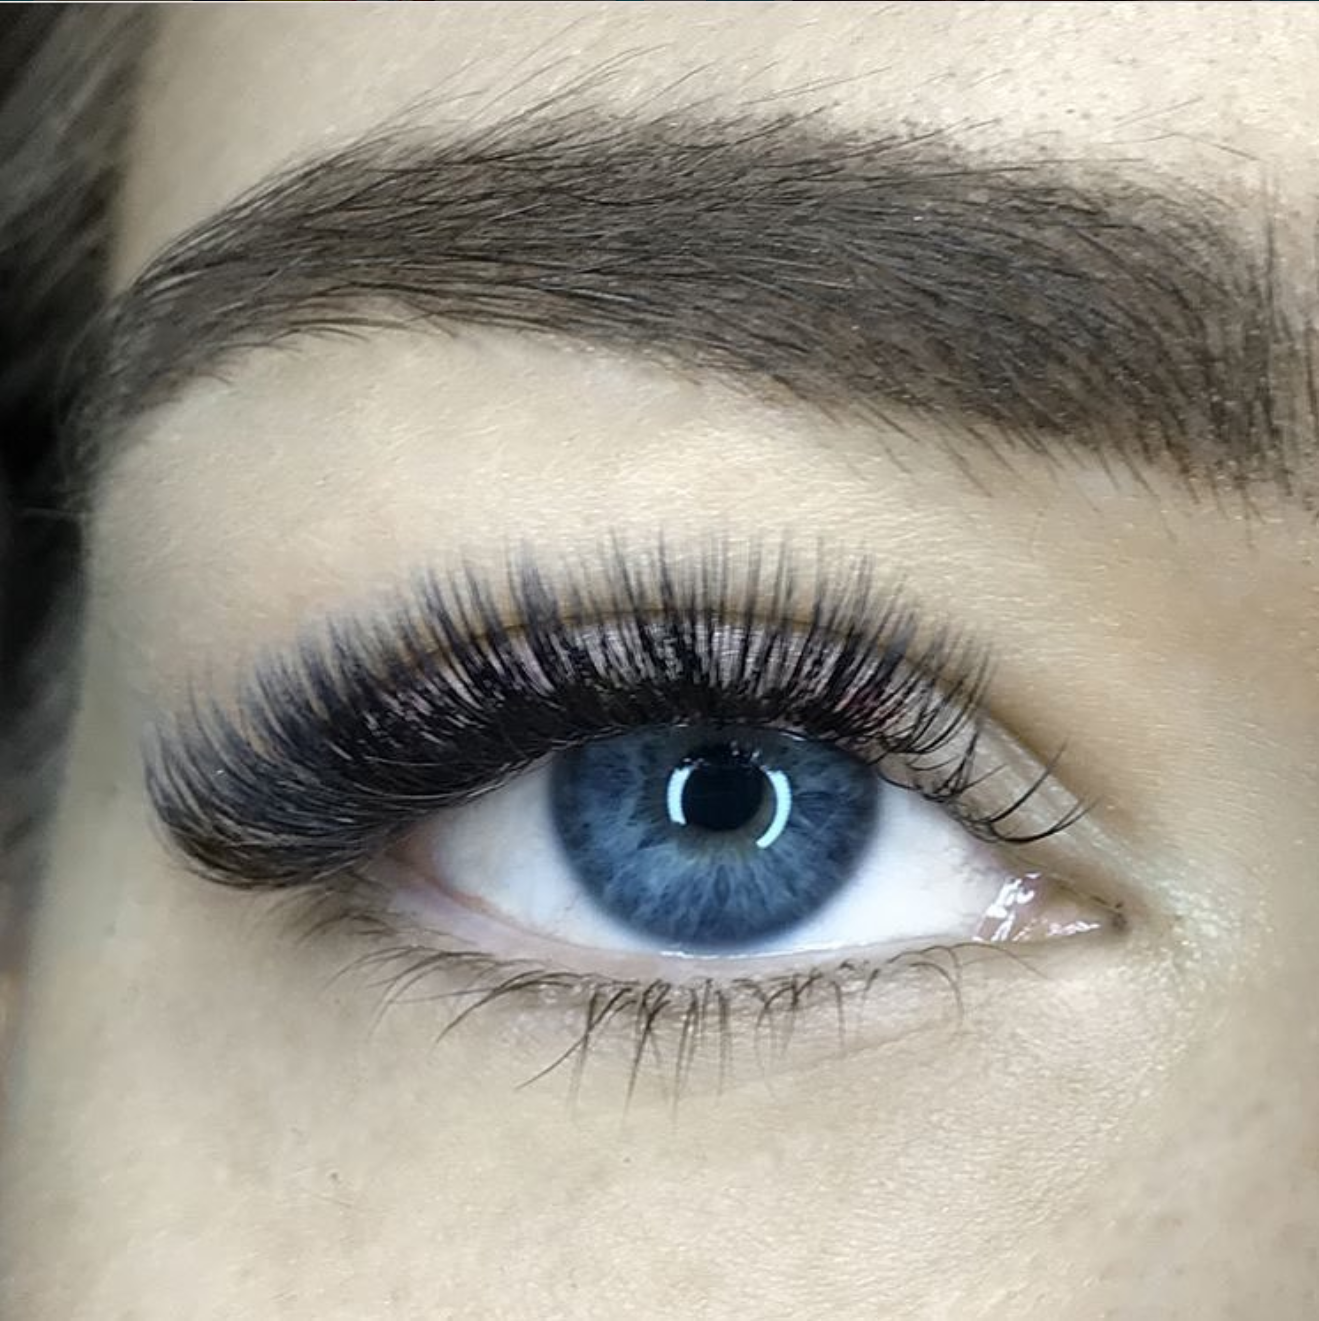 56a51a4d36a Stunning classic & volume lashes produced by LashJoy Academy students